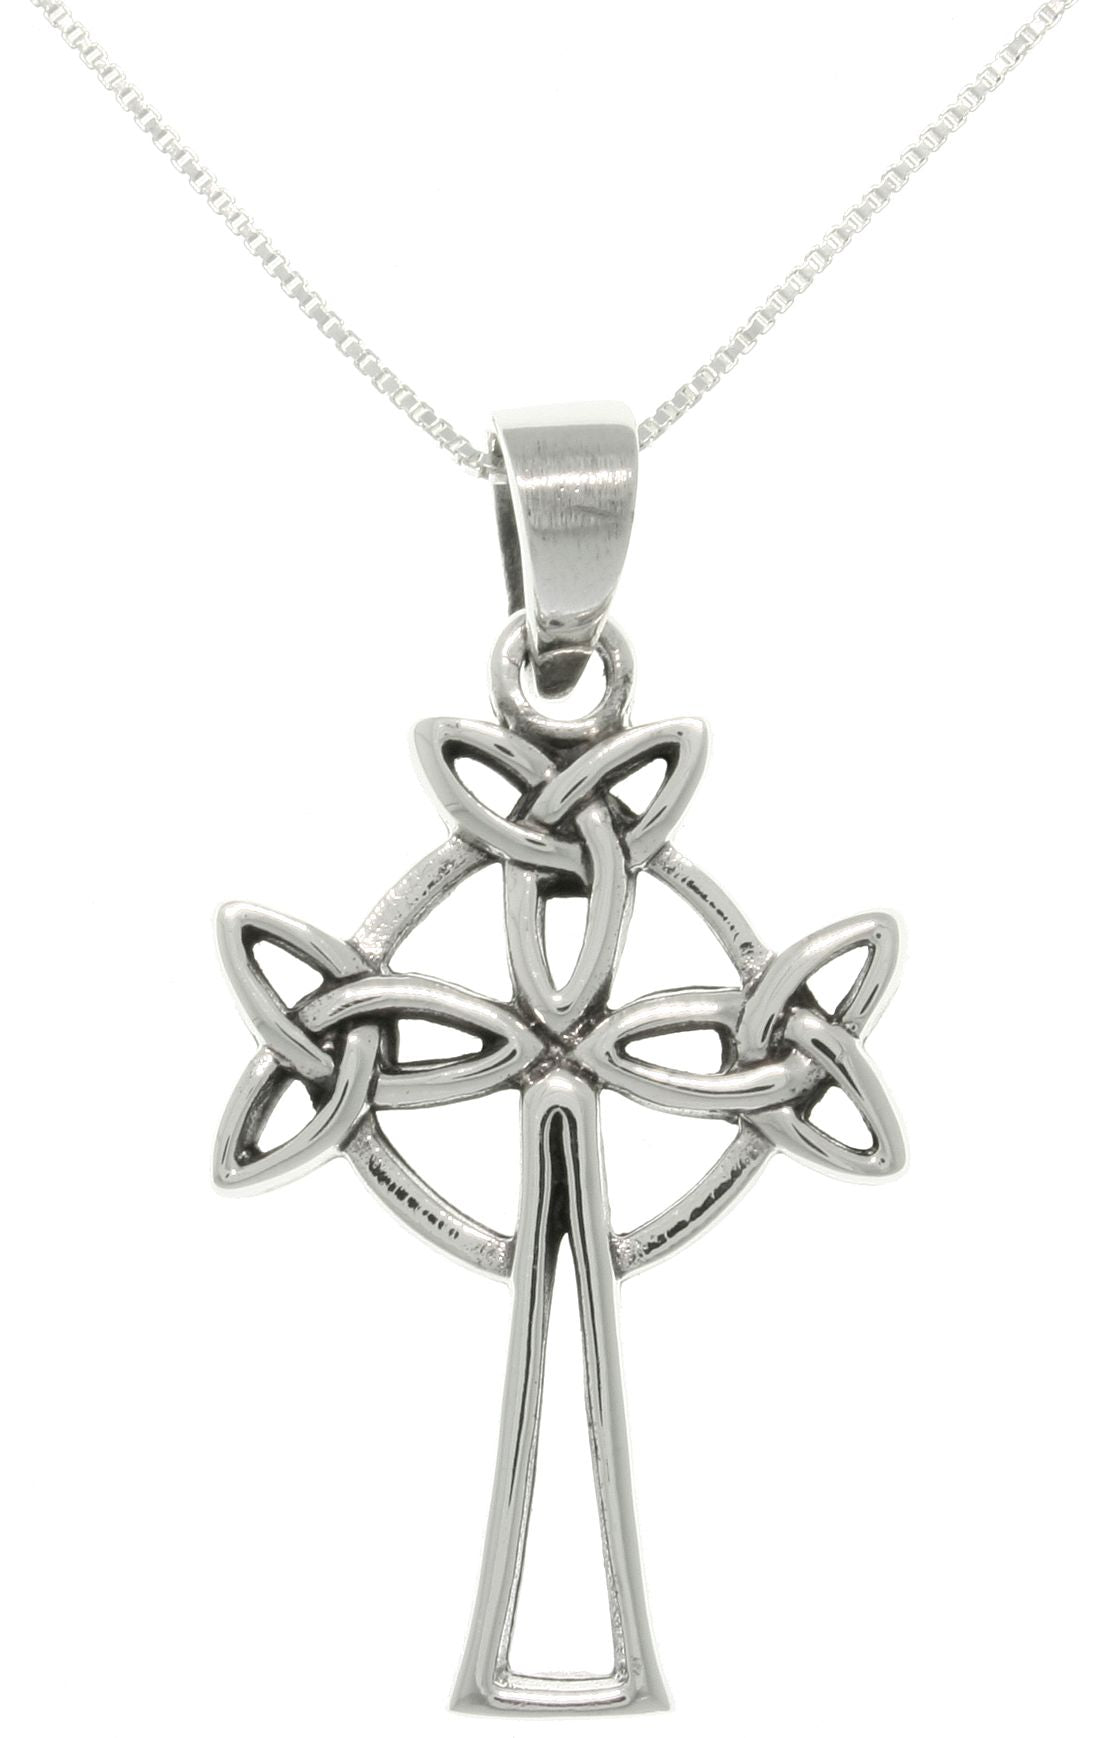 Jewelry Trends Sterling Silver Trinity Knot Celtic Cross Pendant with 18 Inch Chain Necklace Religious Jewelry